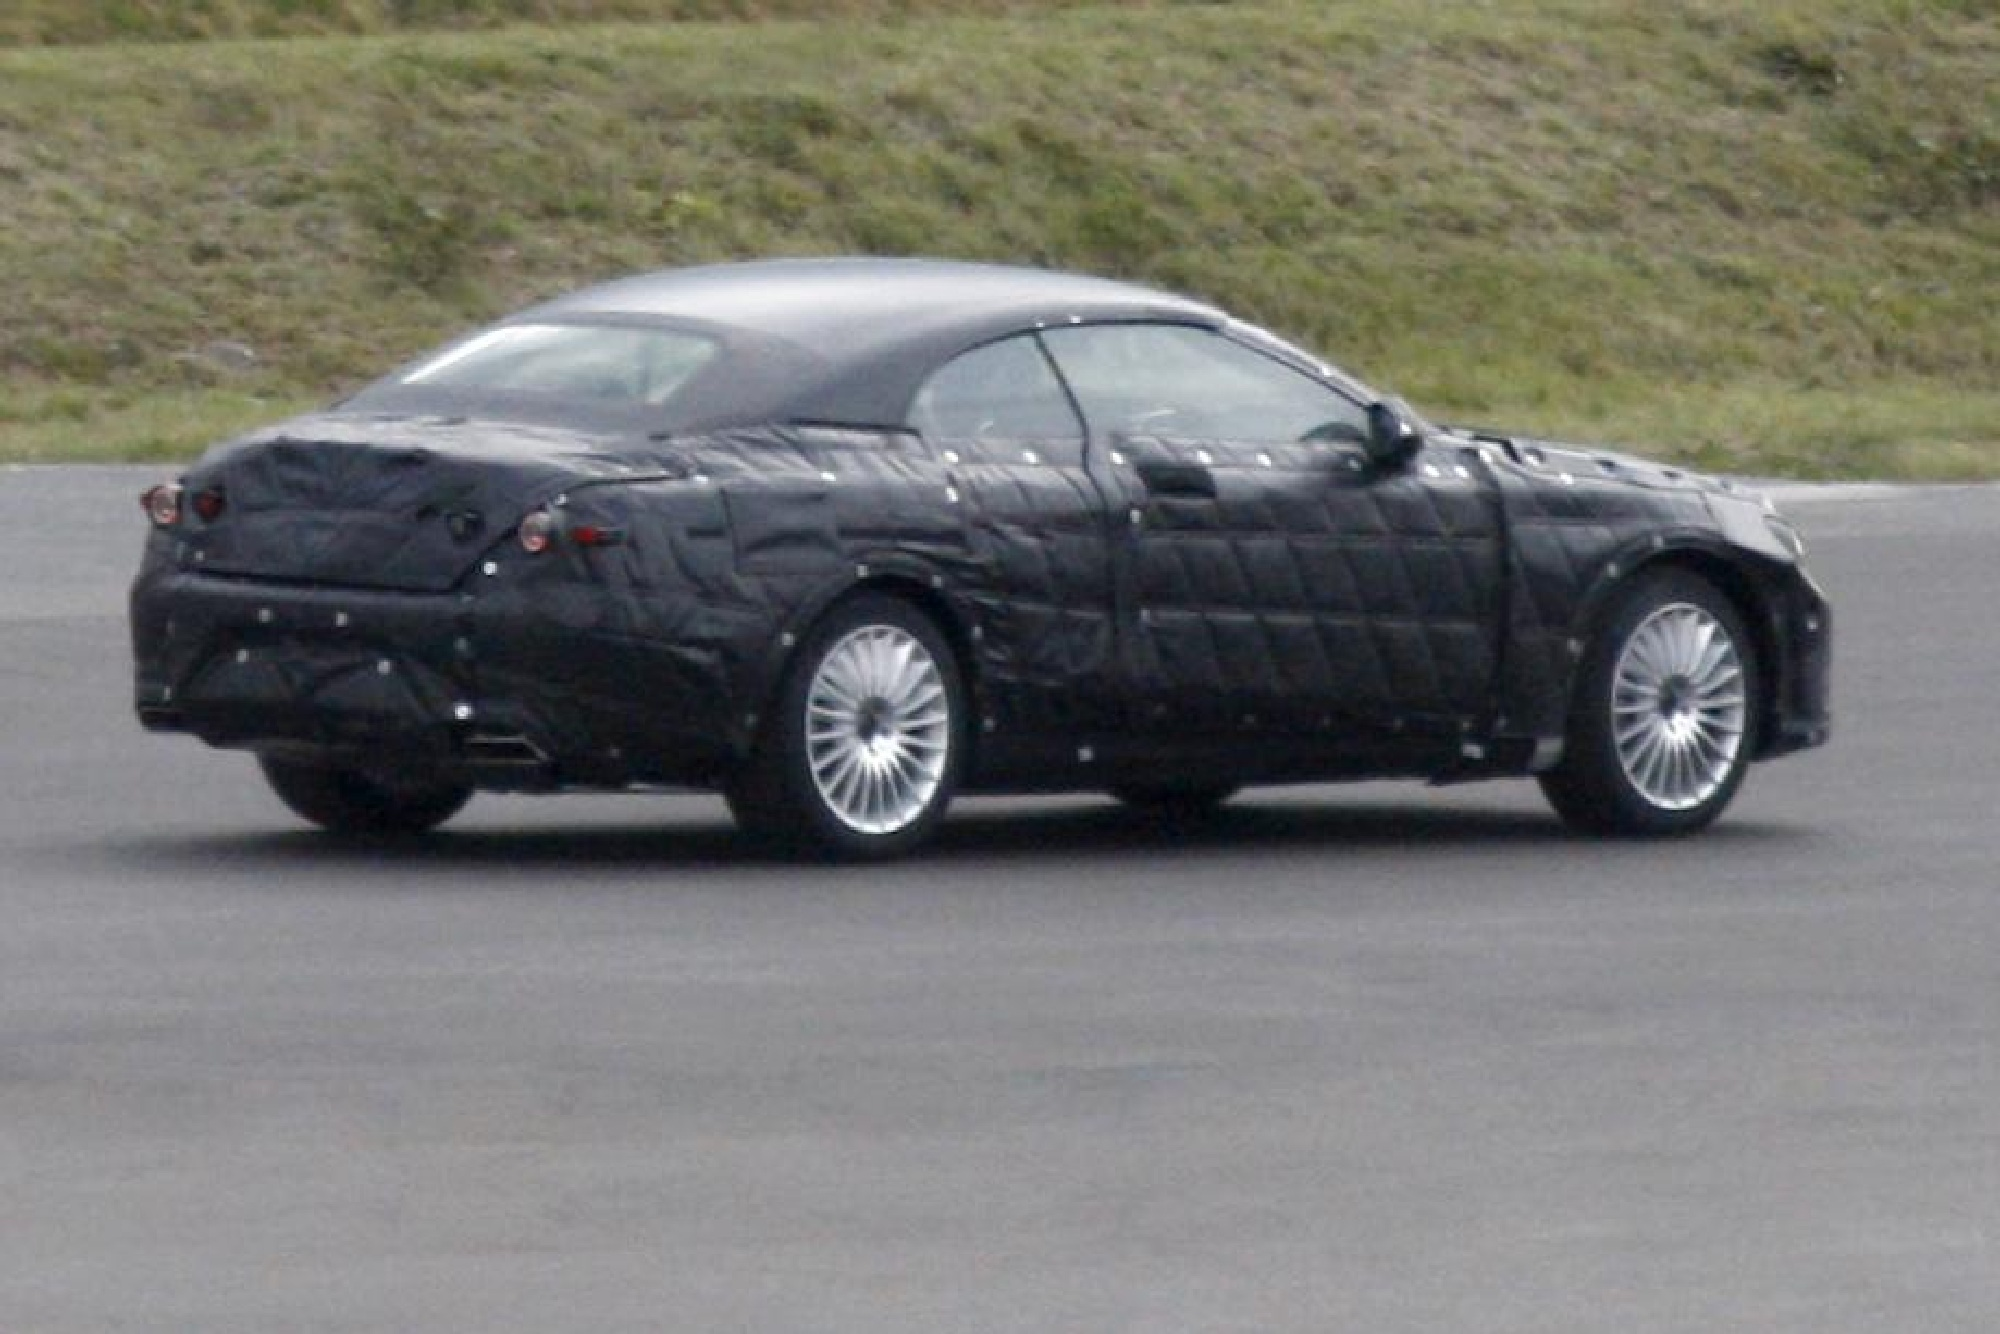 2014 mercedes-benz s-class convertible spy photos 4